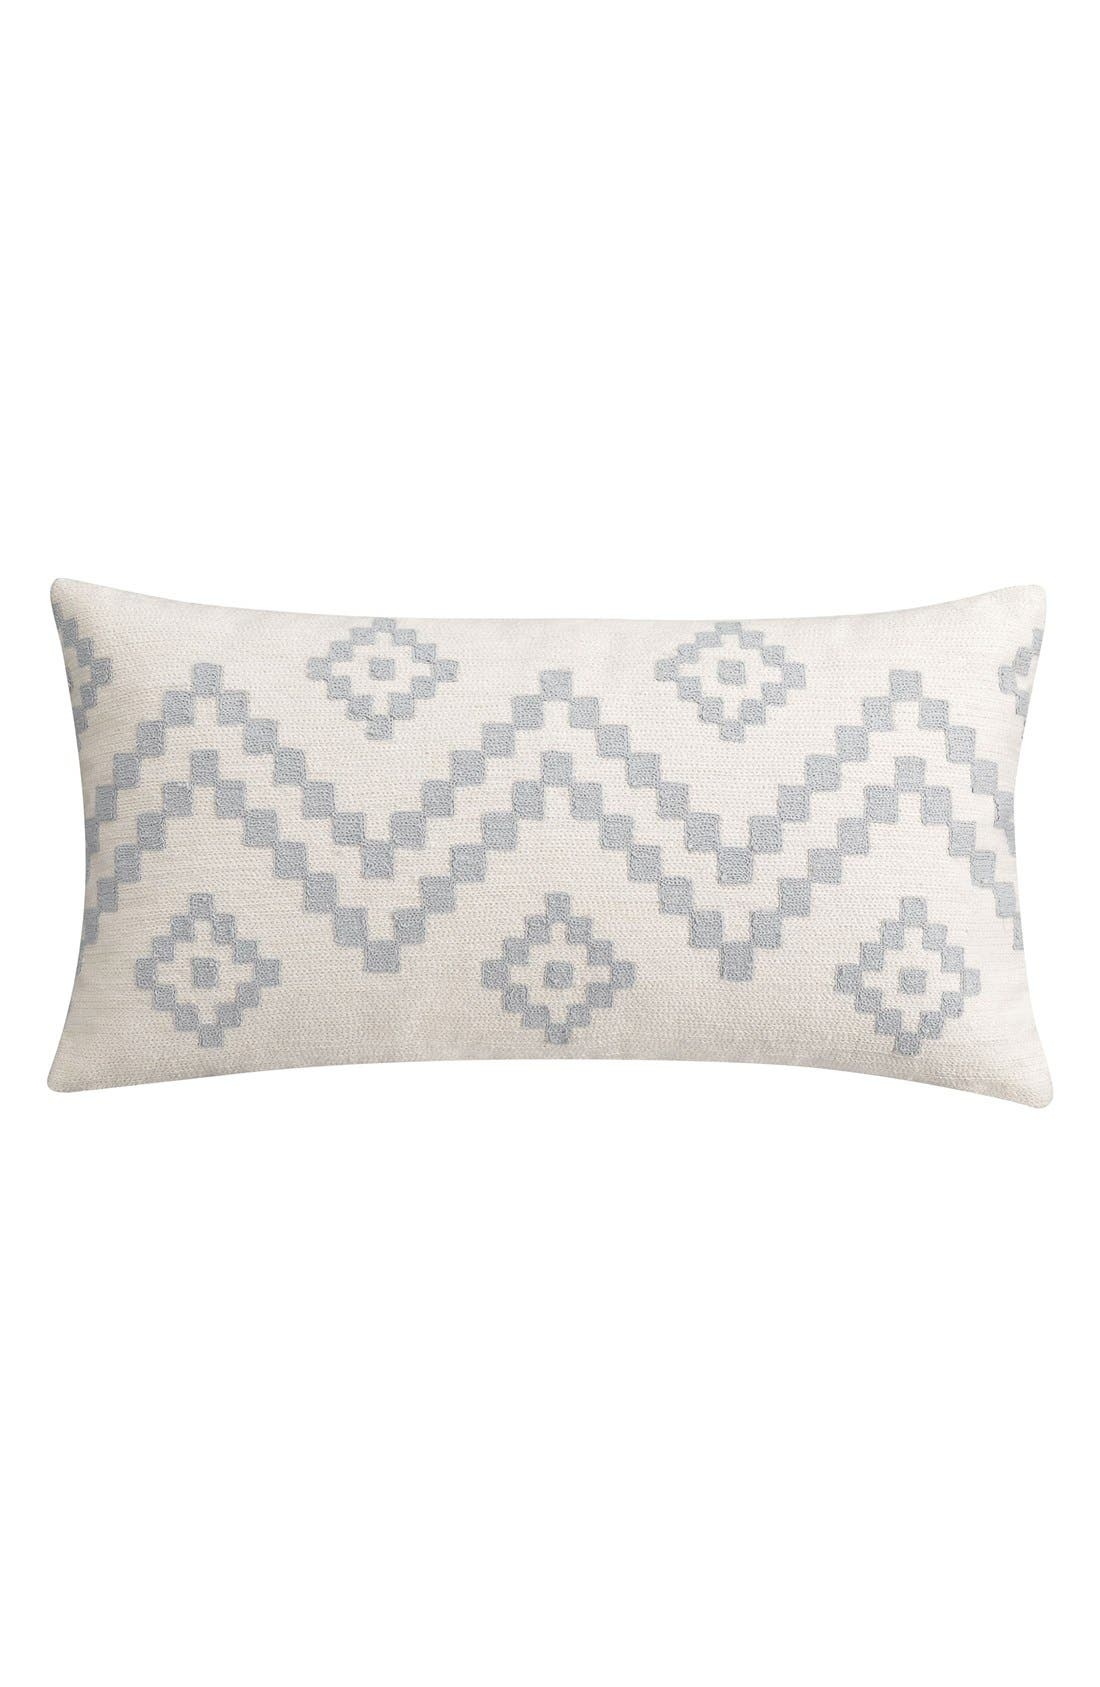 Alternate Image 1 Selected - cupcakes and cashmere 'Klim' Crewel Embroidered Accent Pillow